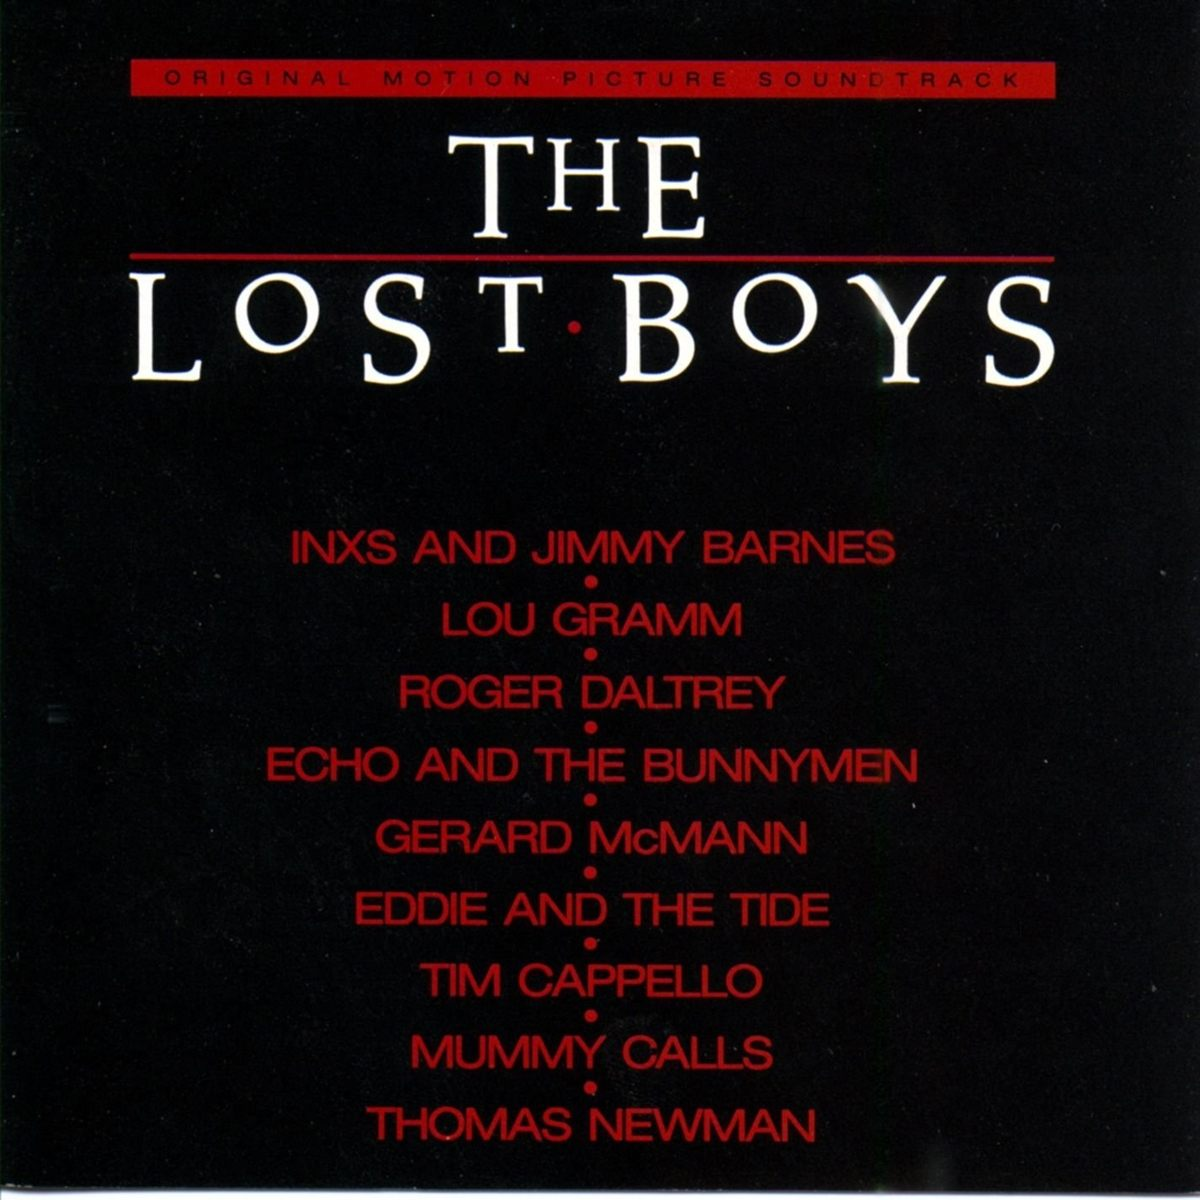 10 9 20 Full-Blooded Facts About The Lost Boys